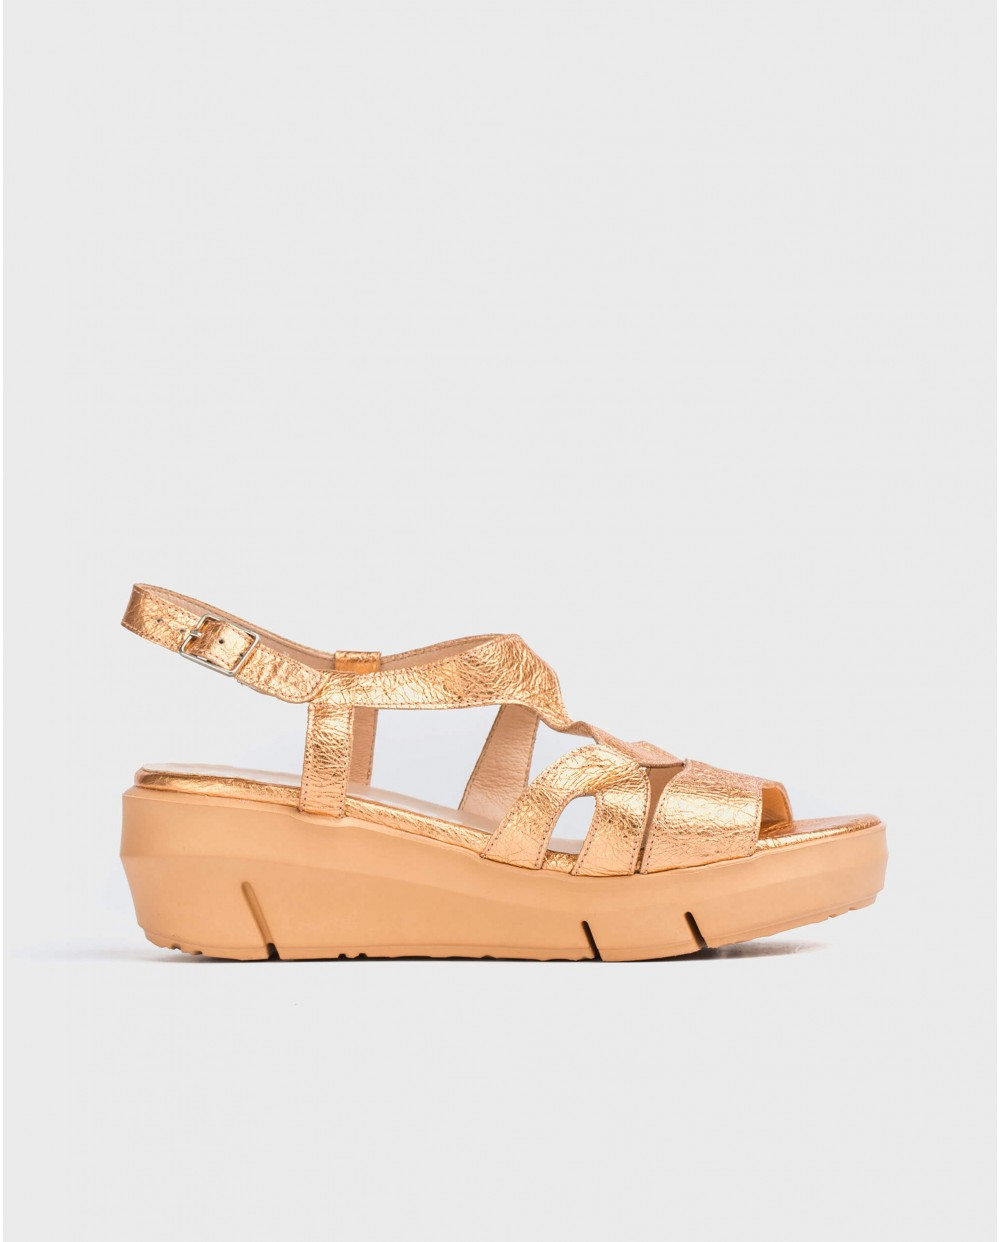 Wonders-Sandals-Strappy metallic sandal